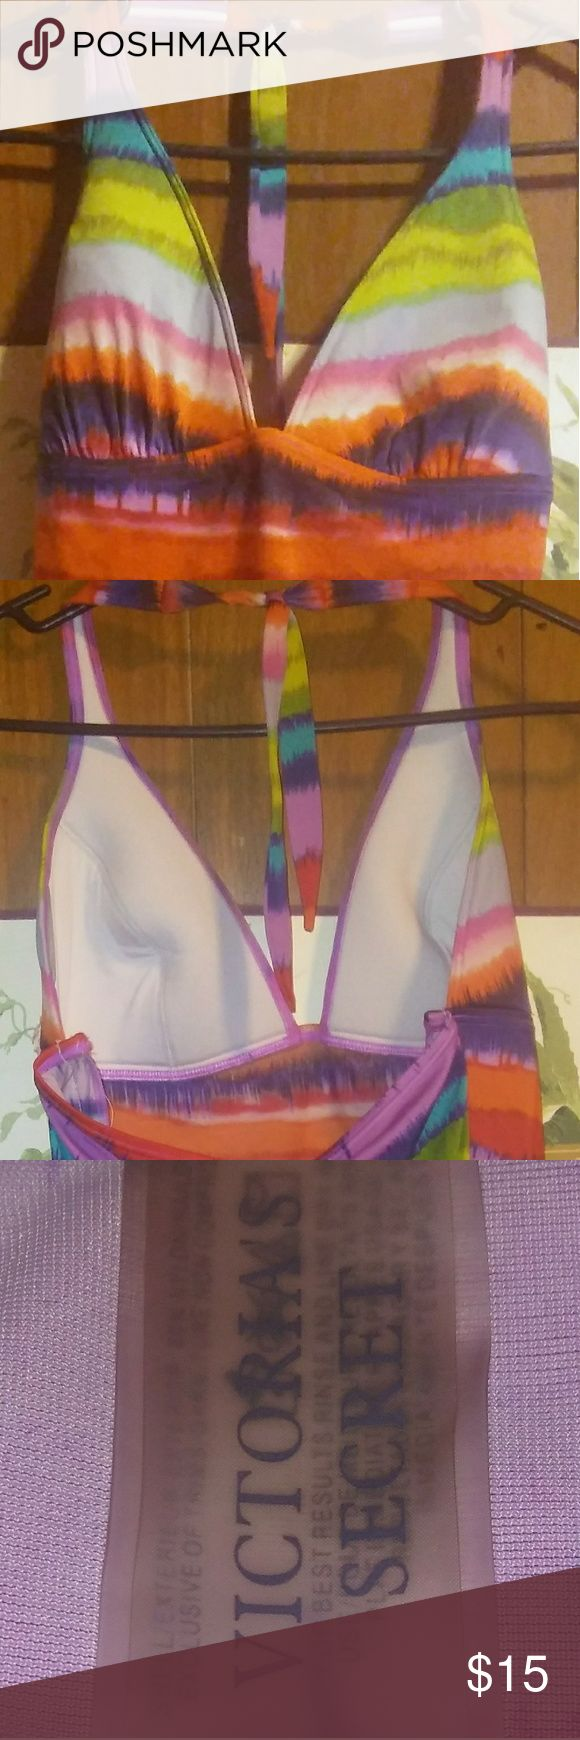 Victoria's Secret Swim Top This is a colorful VS swim top with a halter neckline. It is a tankini meaning it will stop at your waist or longer depending on your shape.  *BOTTOMS NOT INCLUDED* Victoria's Secret Swim